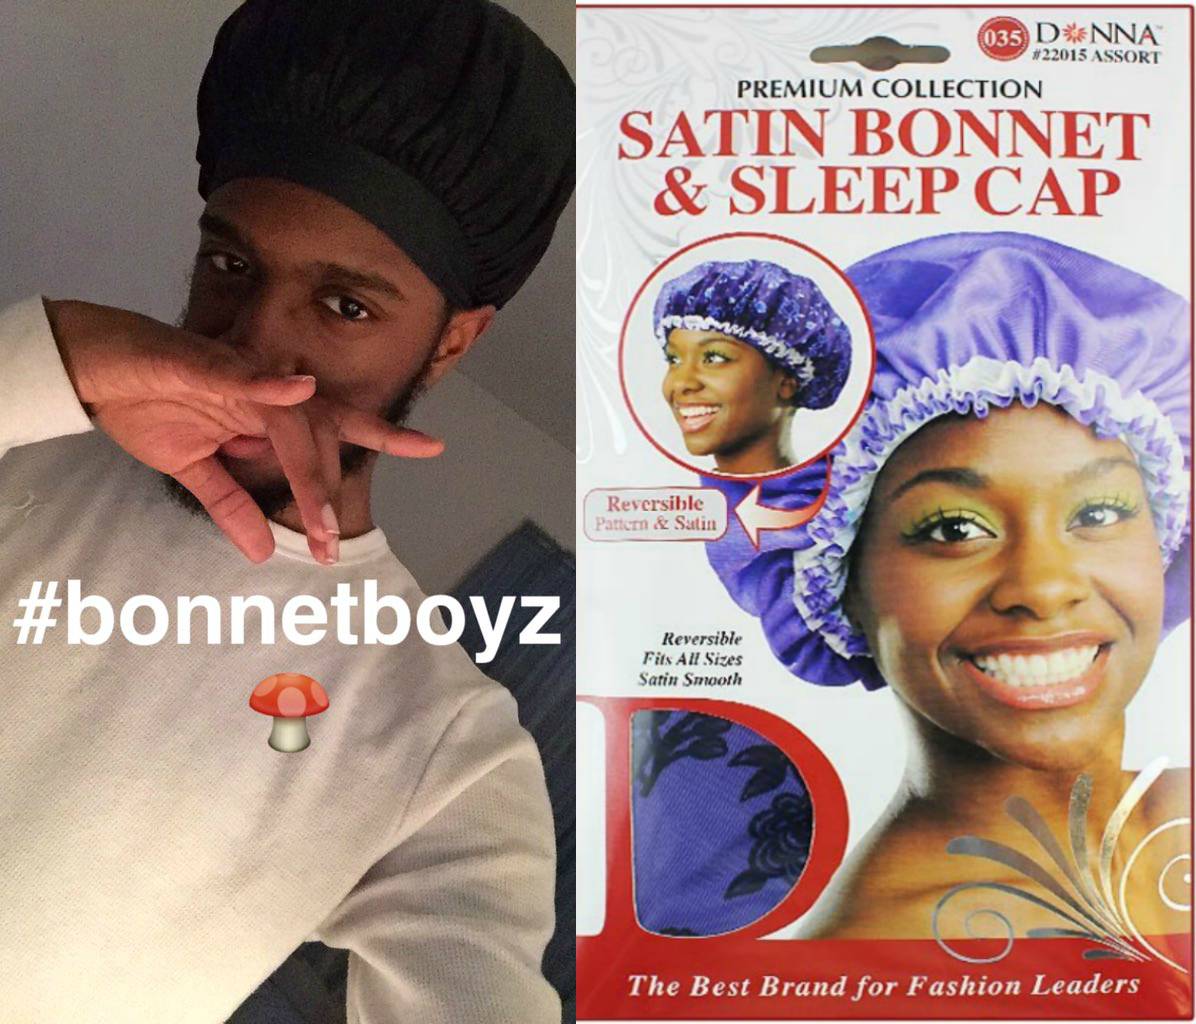 f4f7b5580 Goodbye DuRag, Hello... Bonnet? #BonnetBoyz makes a splash on ...